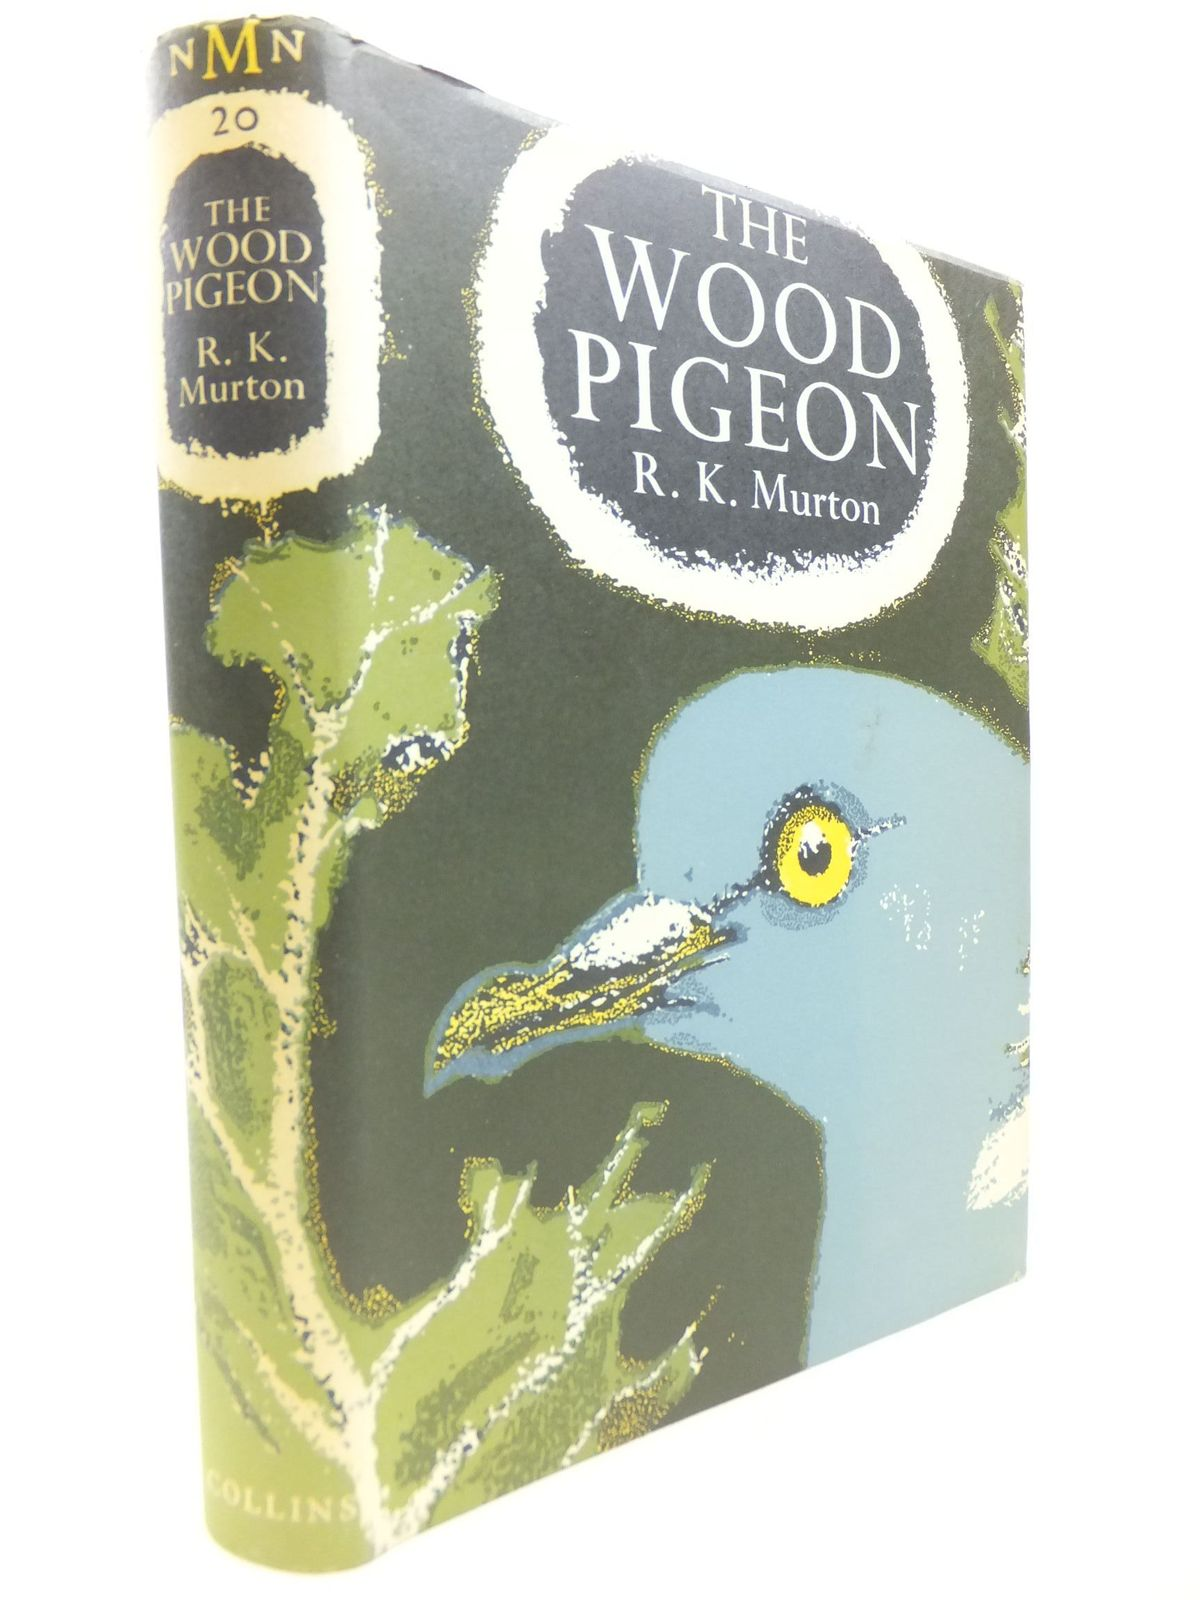 Photo of THE WOOD-PIGEON (NMN 20) written by Murton, R.K. published by Collins (STOCK CODE: 2112134)  for sale by Stella & Rose's Books